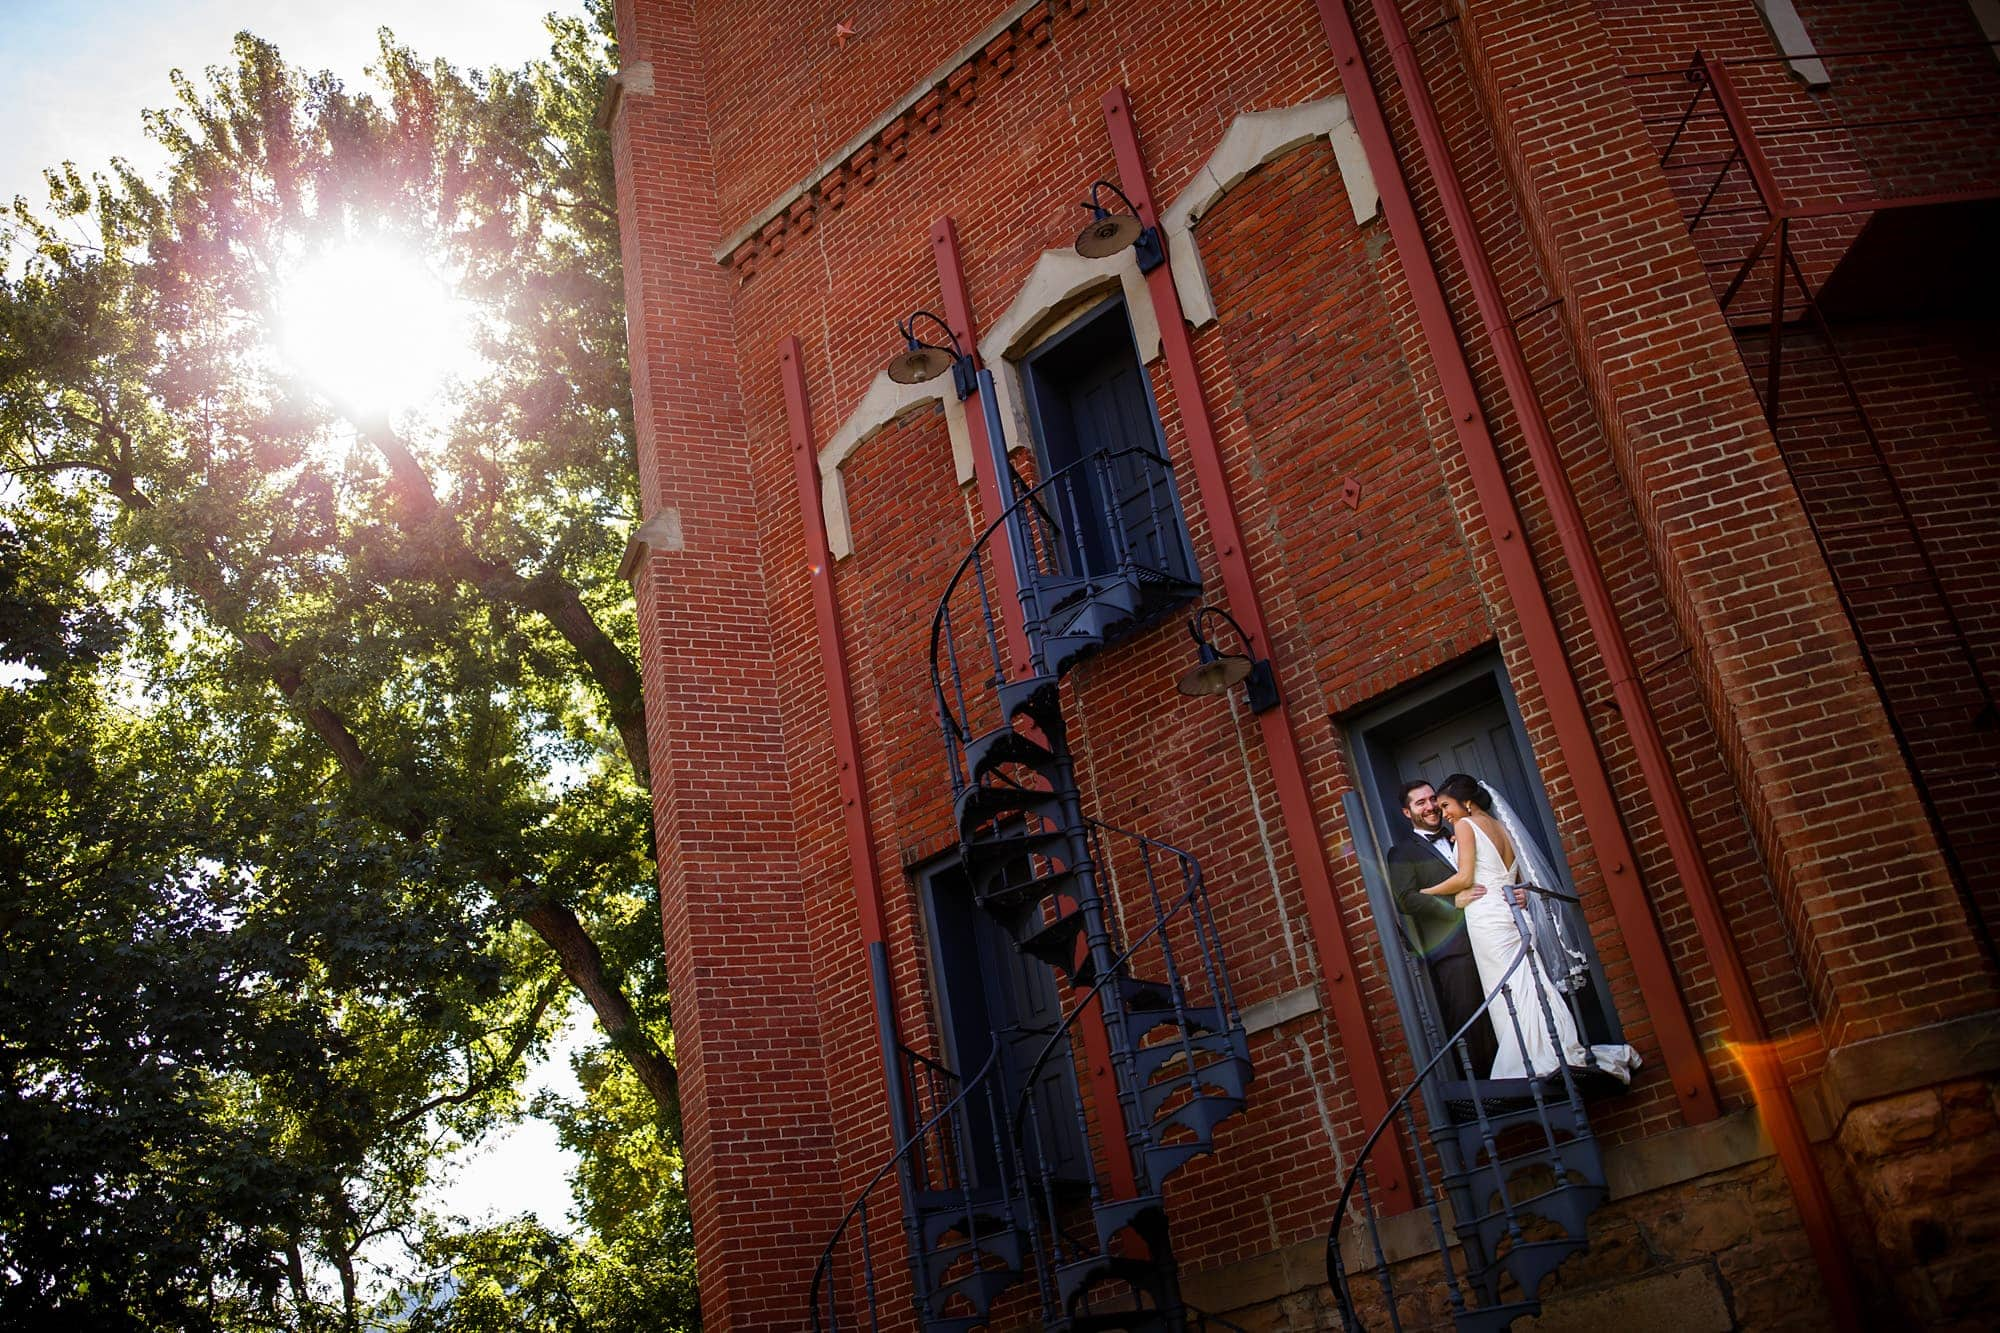 Megan and Bryan pose on the staircase of Old Main on the University of Colorado campus before their wedding